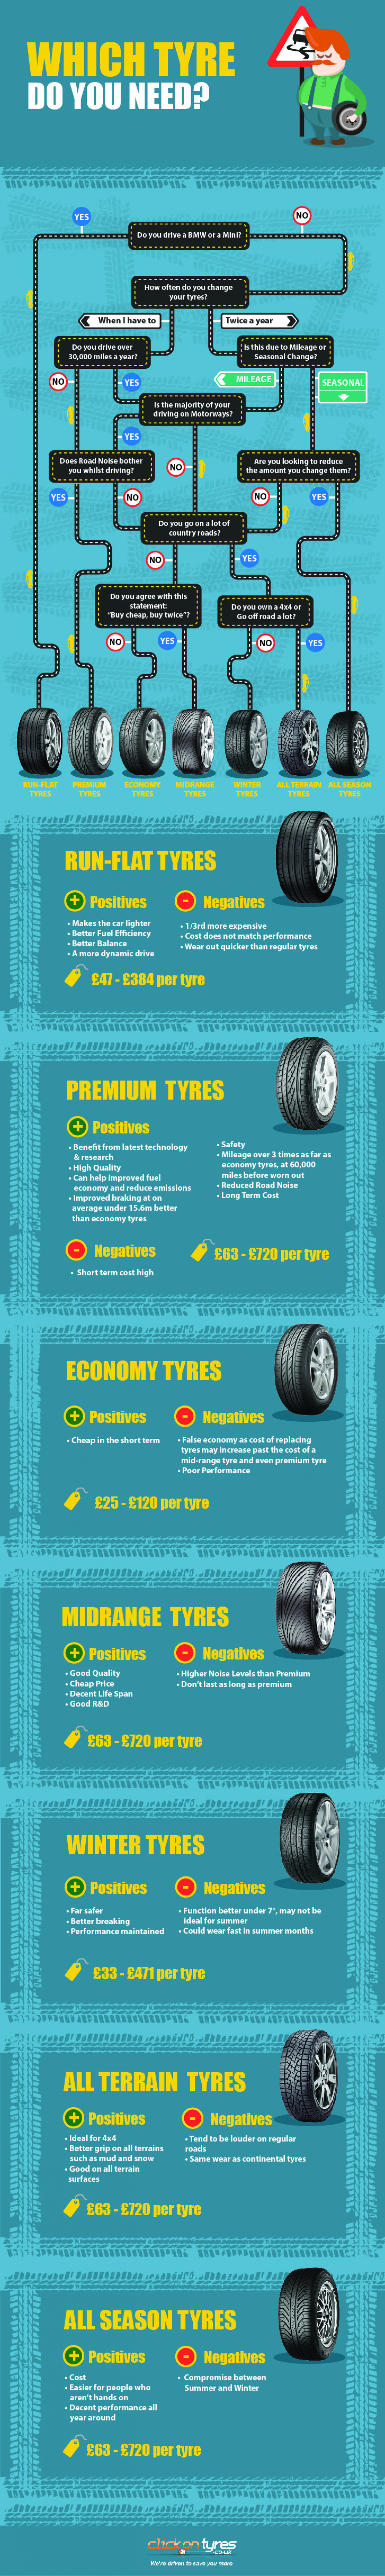 Which Tyre do you Need? Infographic